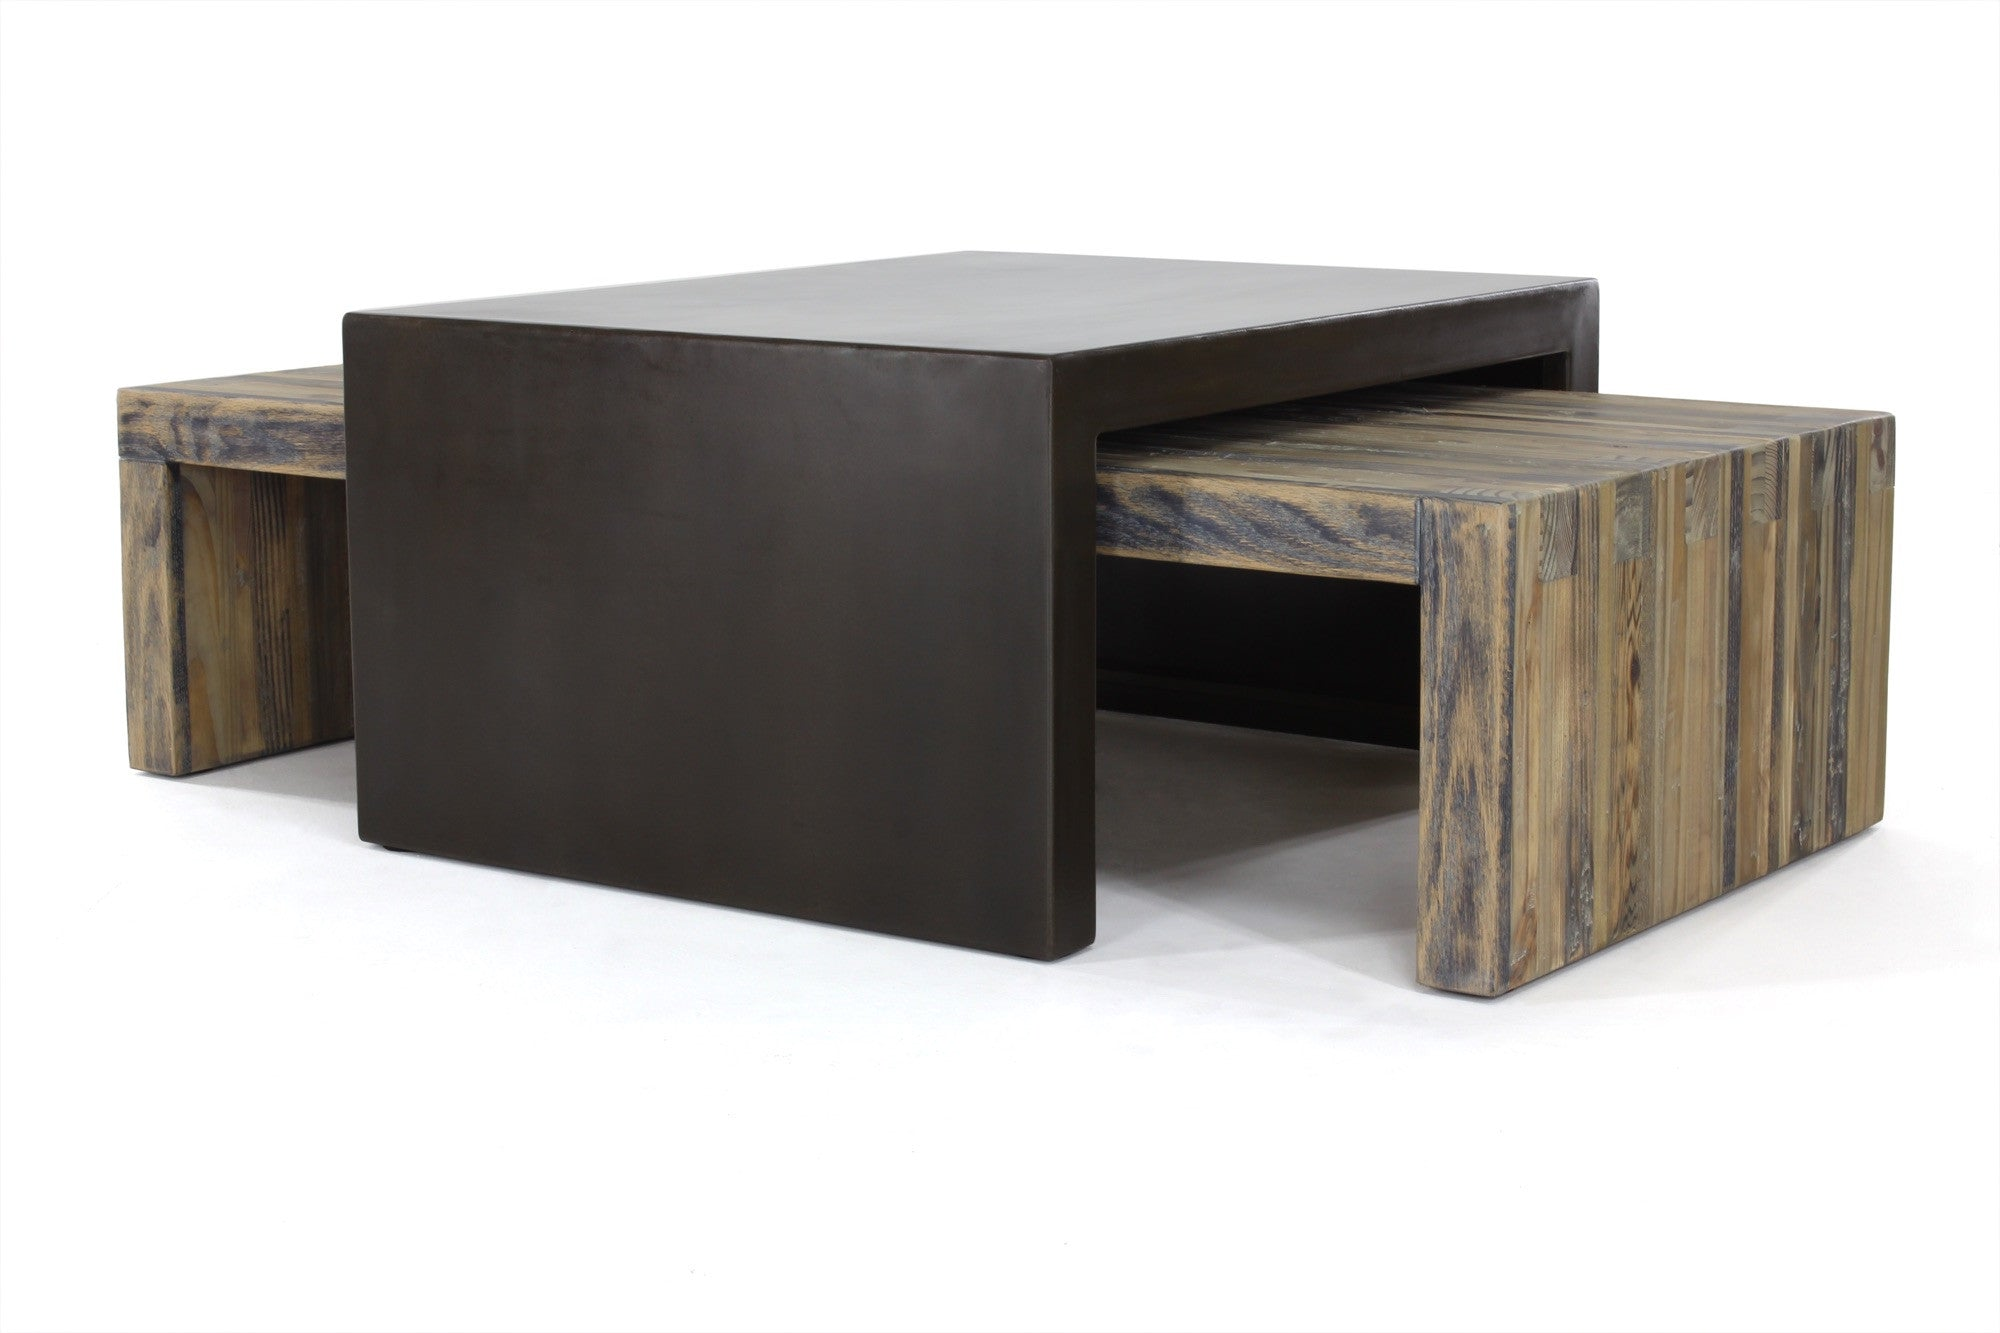 Bento Coffee Table (small Set) | Aged Wood With Waxed Steel